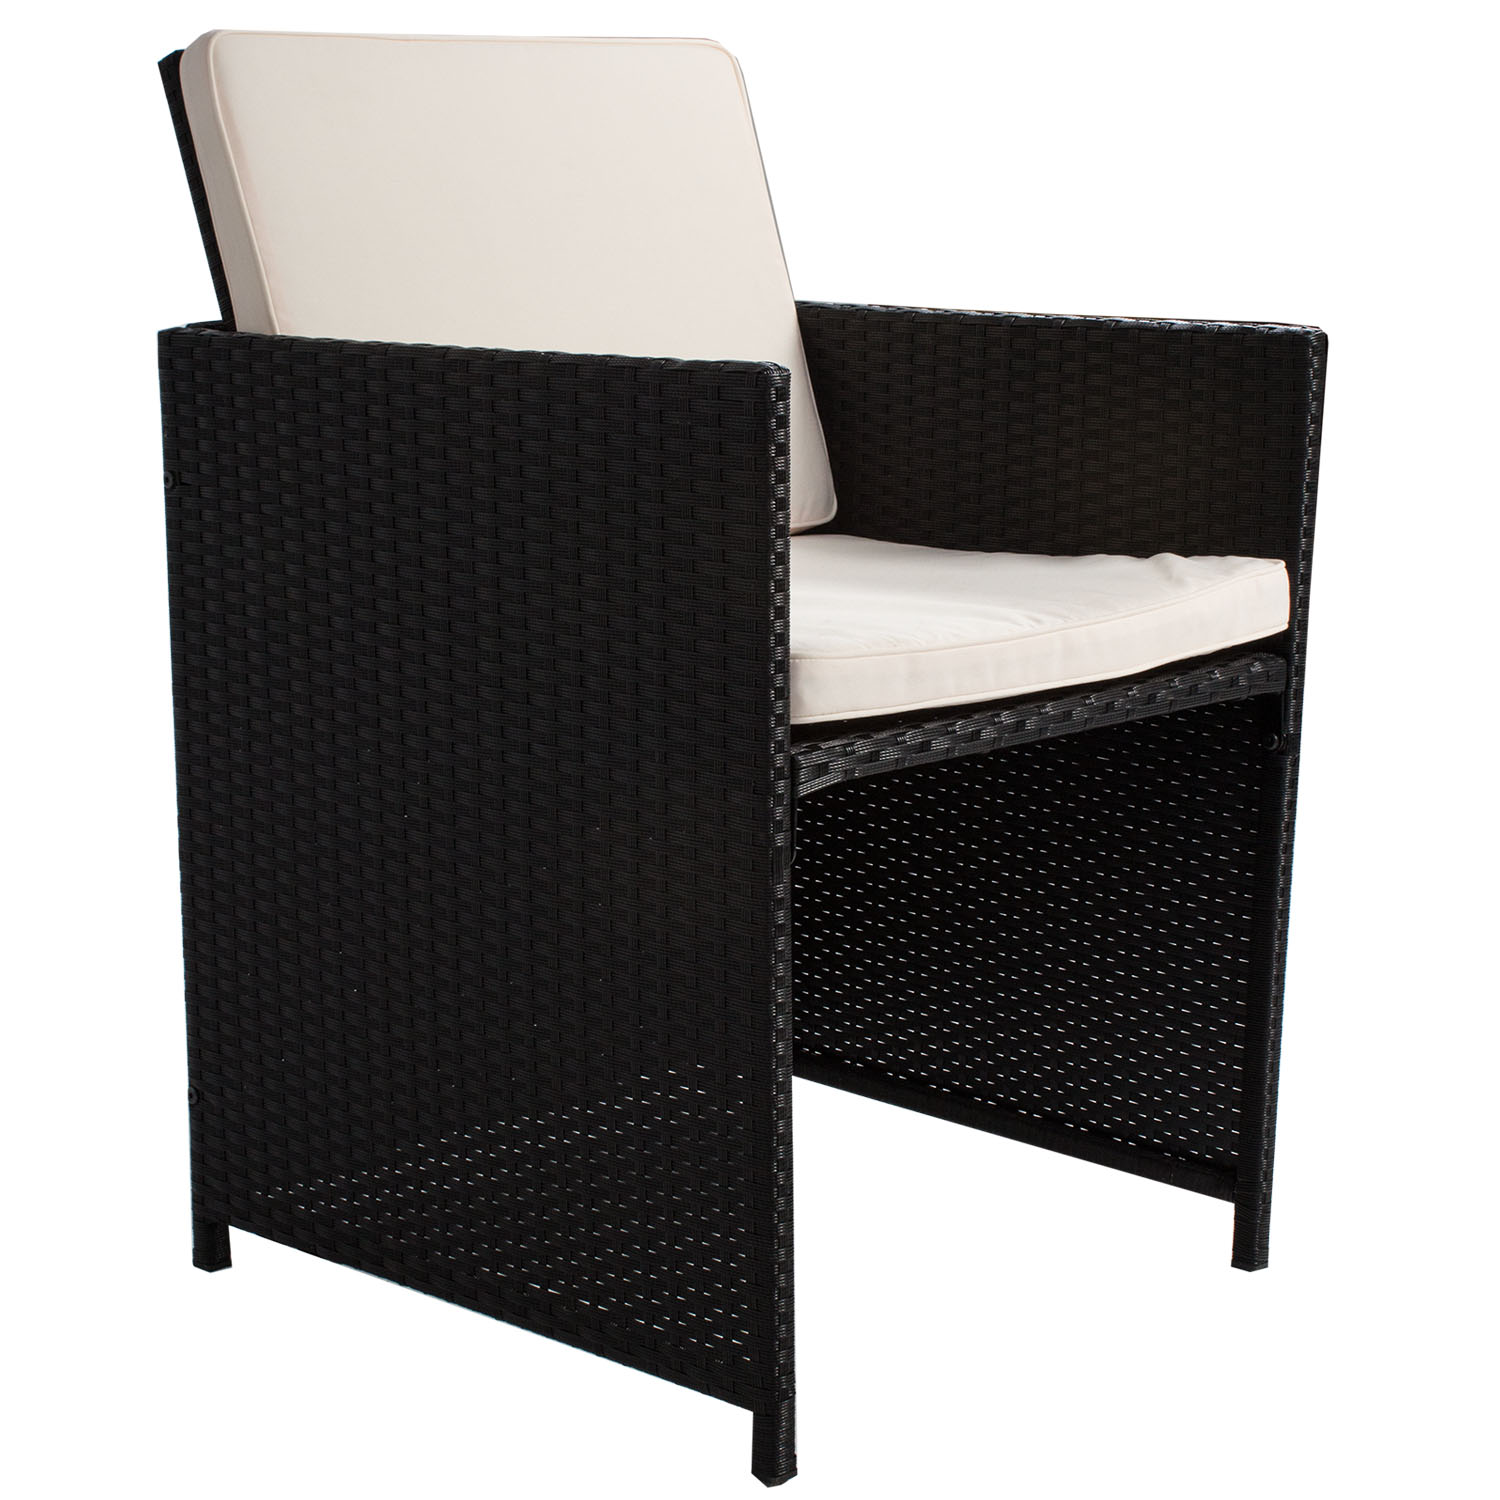 polyrattan gartenm bel essgruppe sitzgruppe rattan lounge. Black Bedroom Furniture Sets. Home Design Ideas